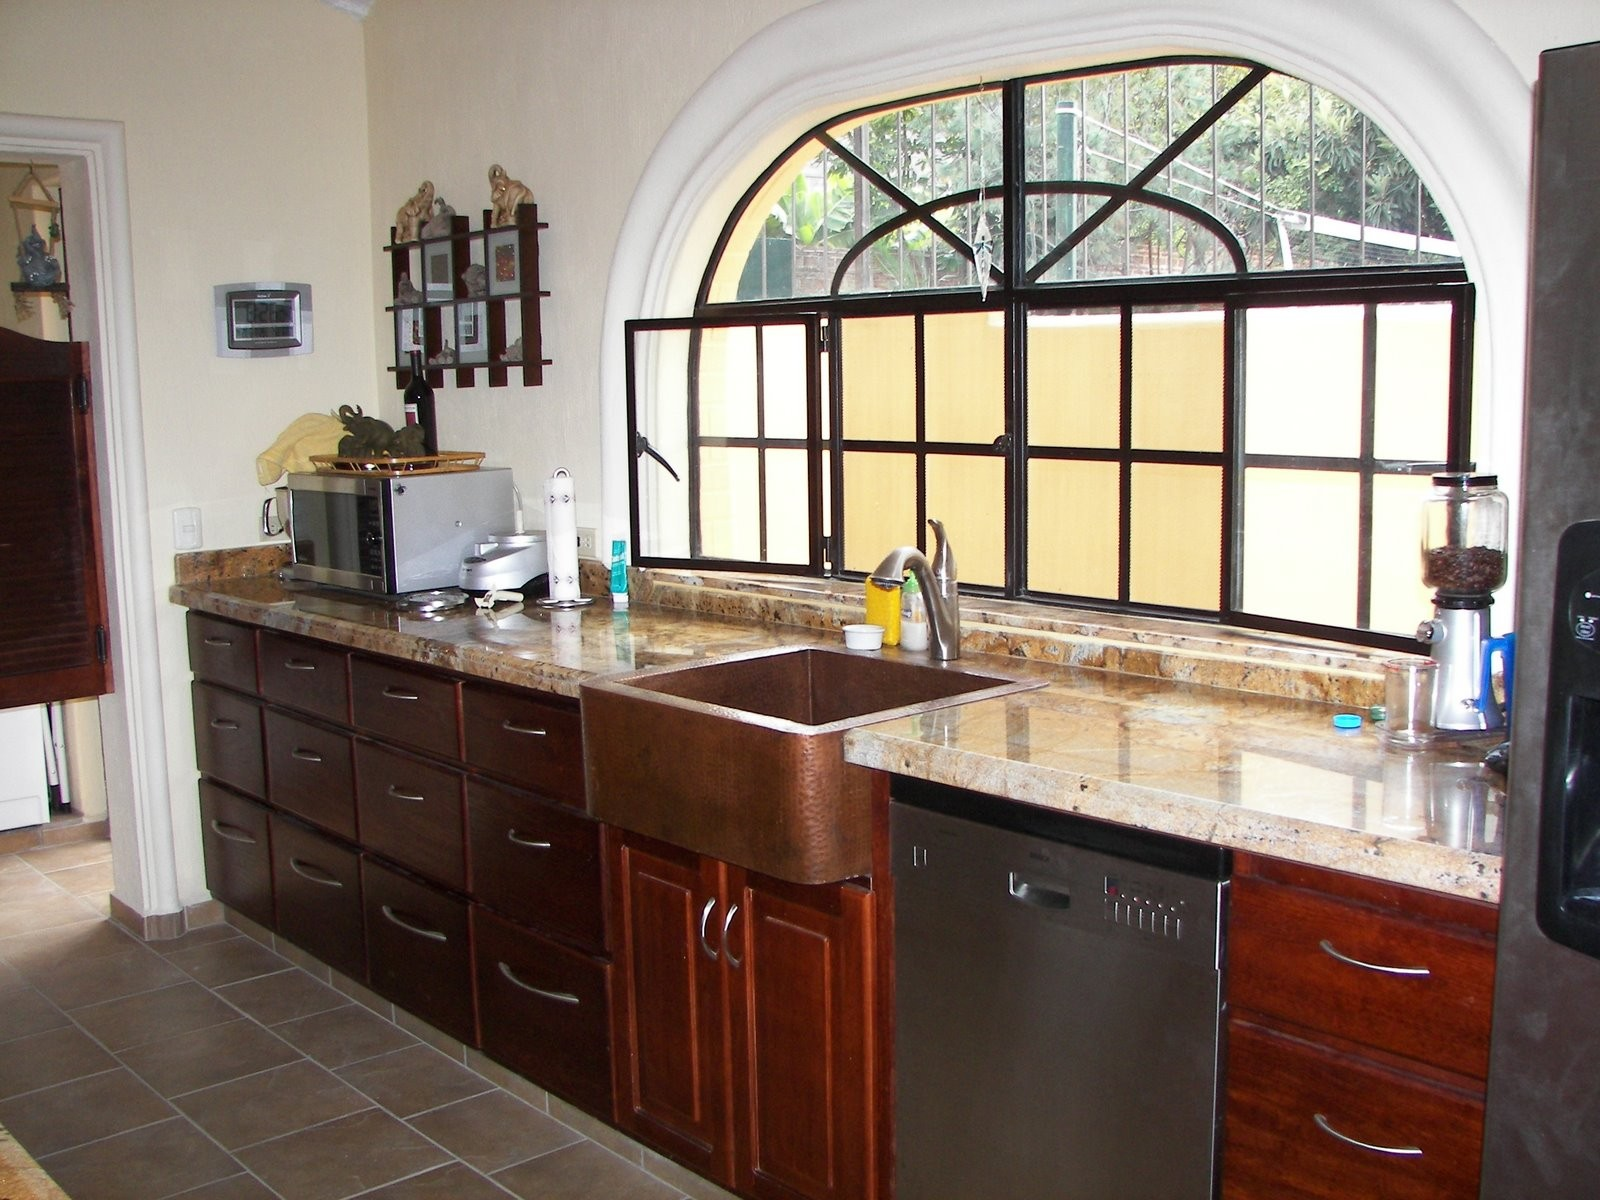 copper kitchen sinks colours of mexico. Black Bedroom Furniture Sets. Home Design Ideas